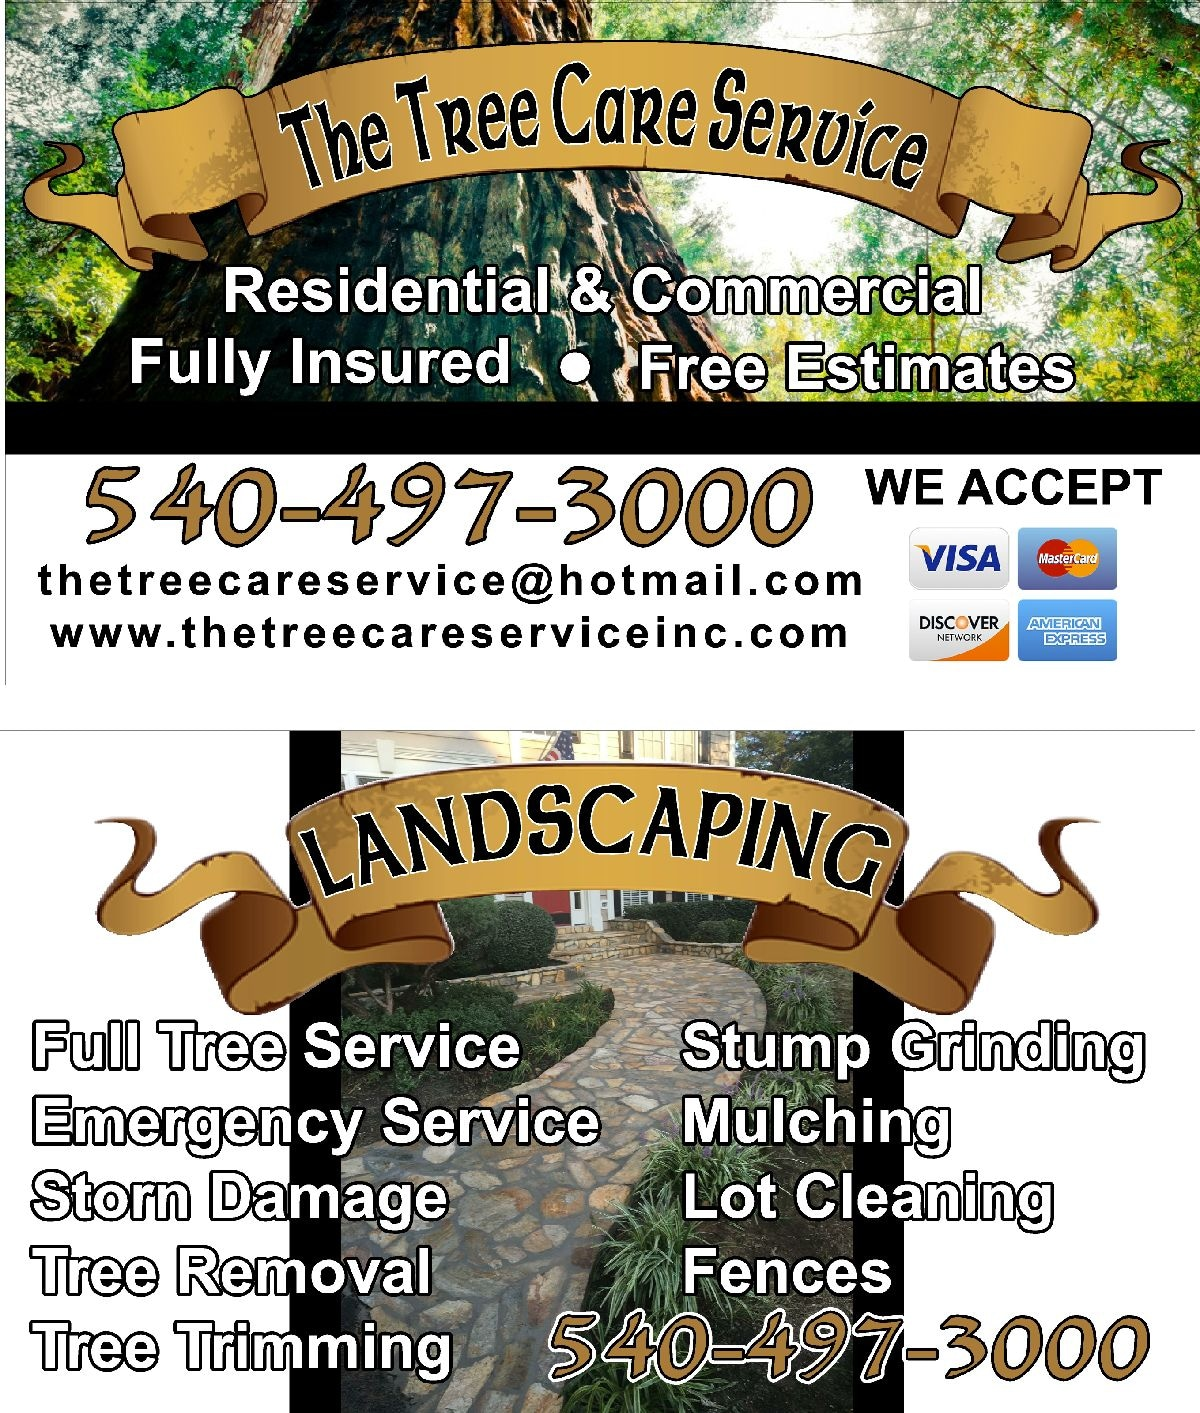 The Tree Care Service